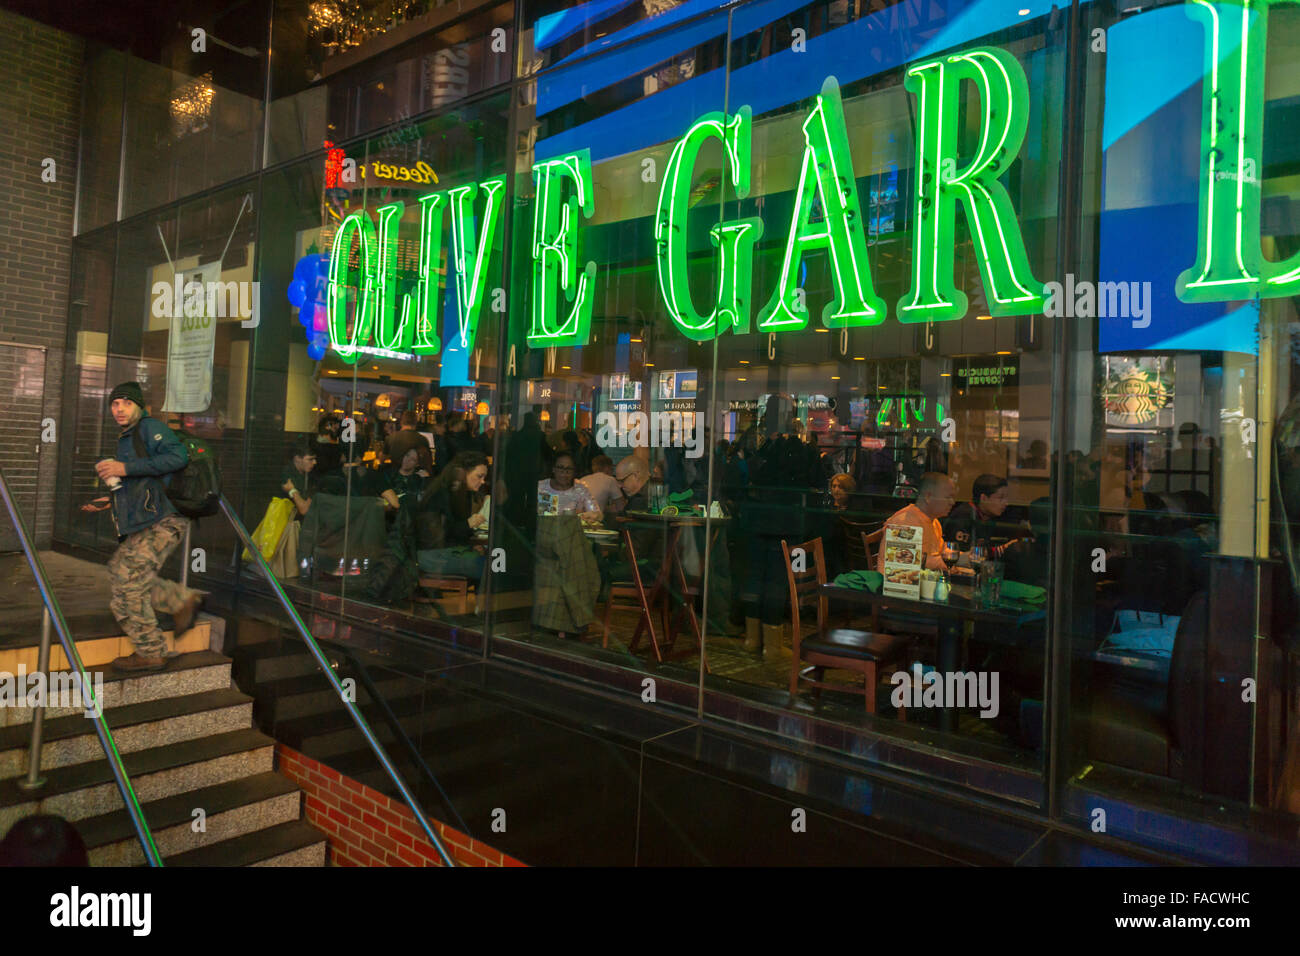 An olive garden restaurant in times square in new york is seen on stock photo royalty free Olive garden italian restaurant new york ny